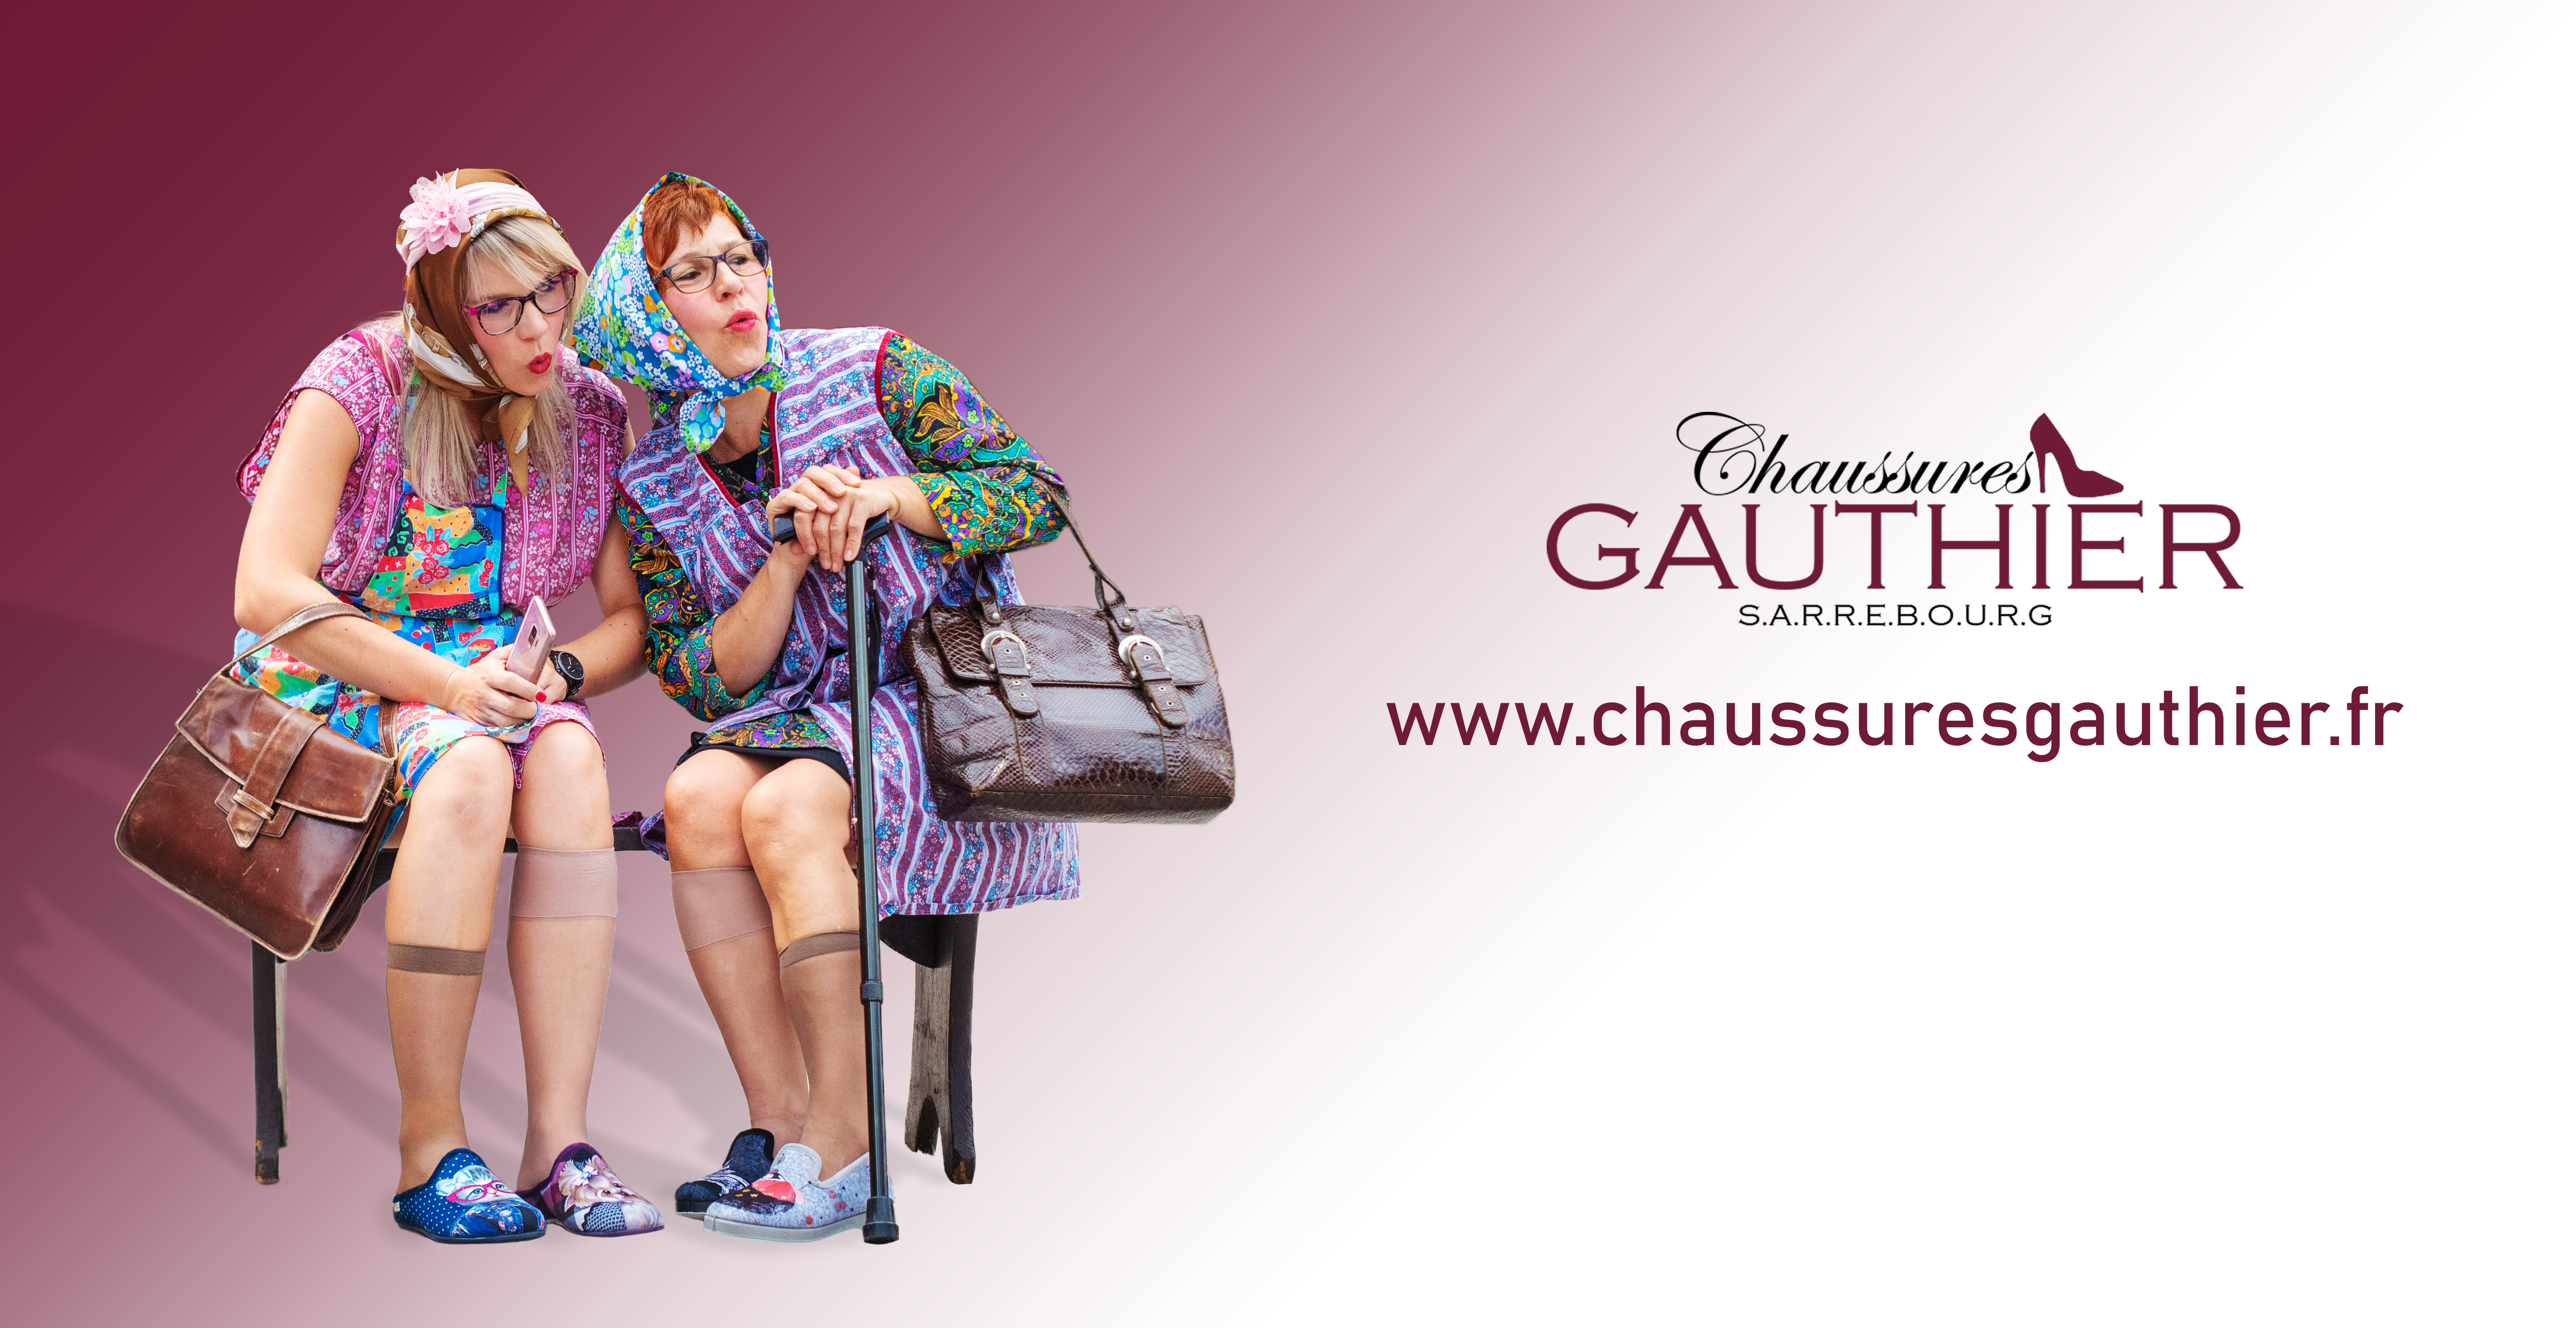 Chaussures Gauthier